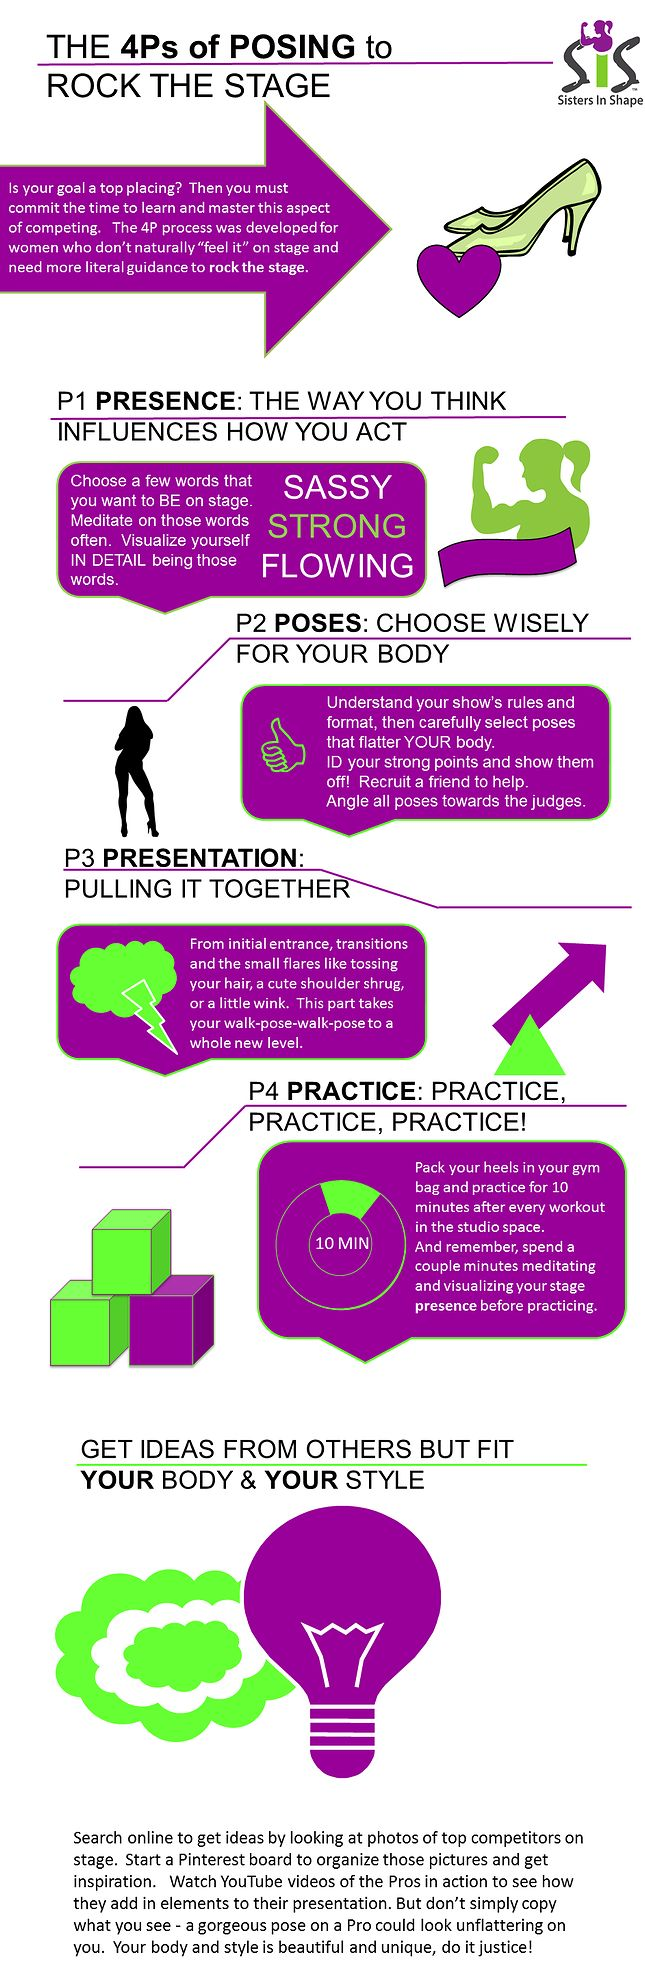 4Ps of Posing Infographic - Especially love that it highlights positive visualization and meditation! Will definitely be going back to this for reference :)